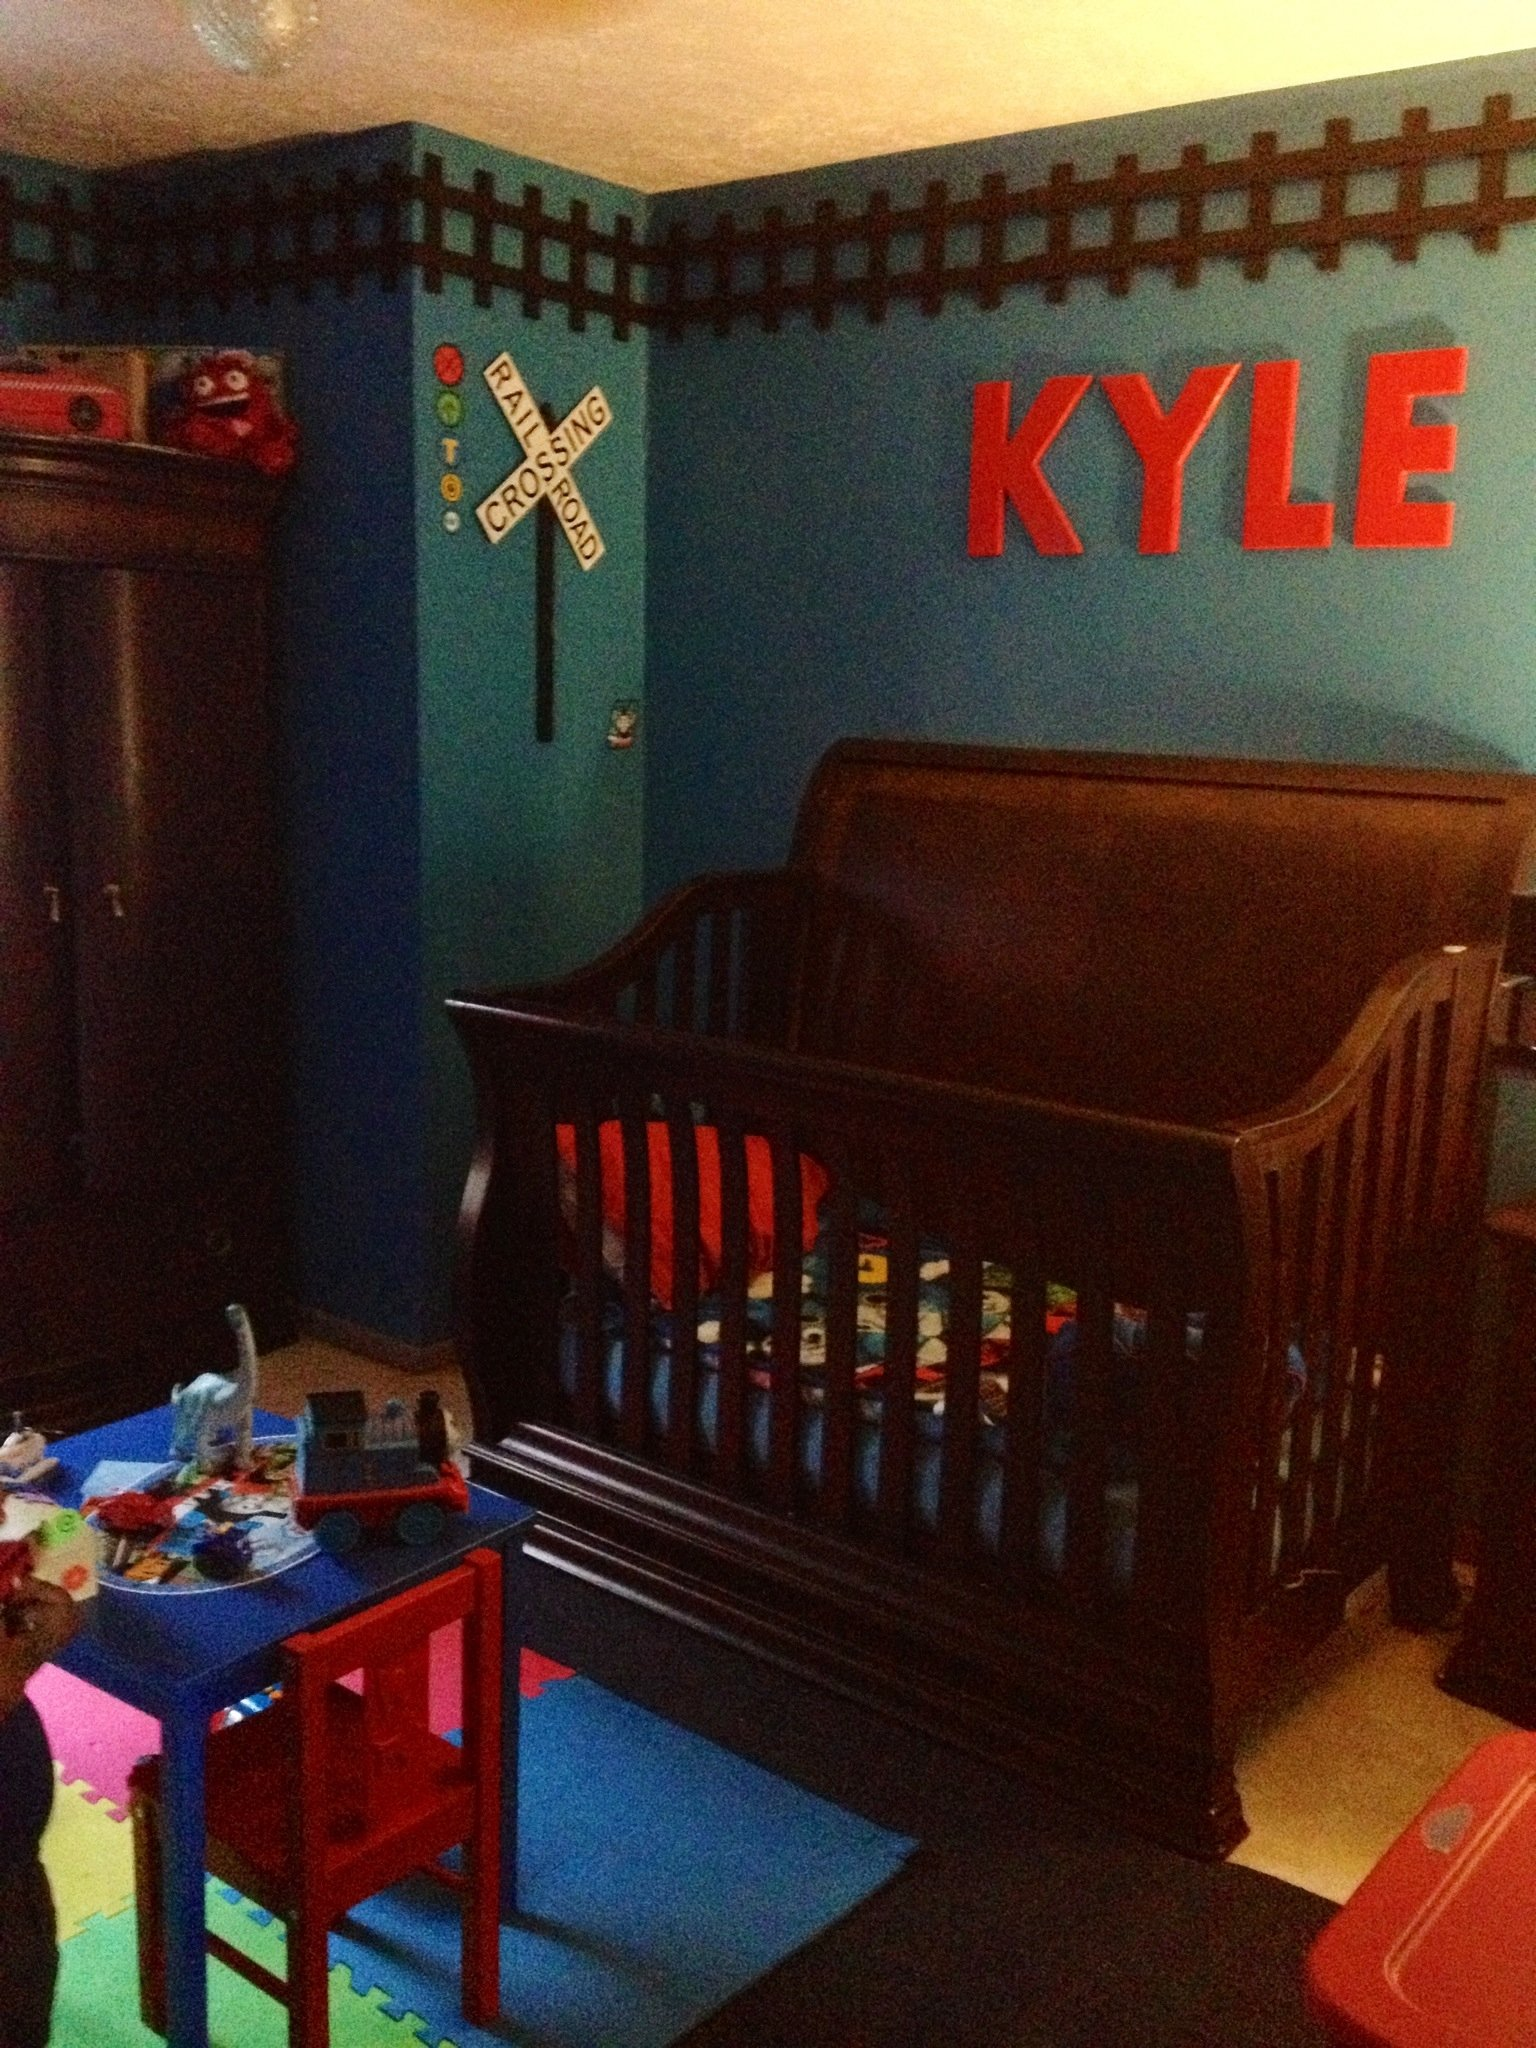 10 Stylish Thomas The Train Bedroom Ideas kyles thomas the train themed room i used picket fence cut the 2020